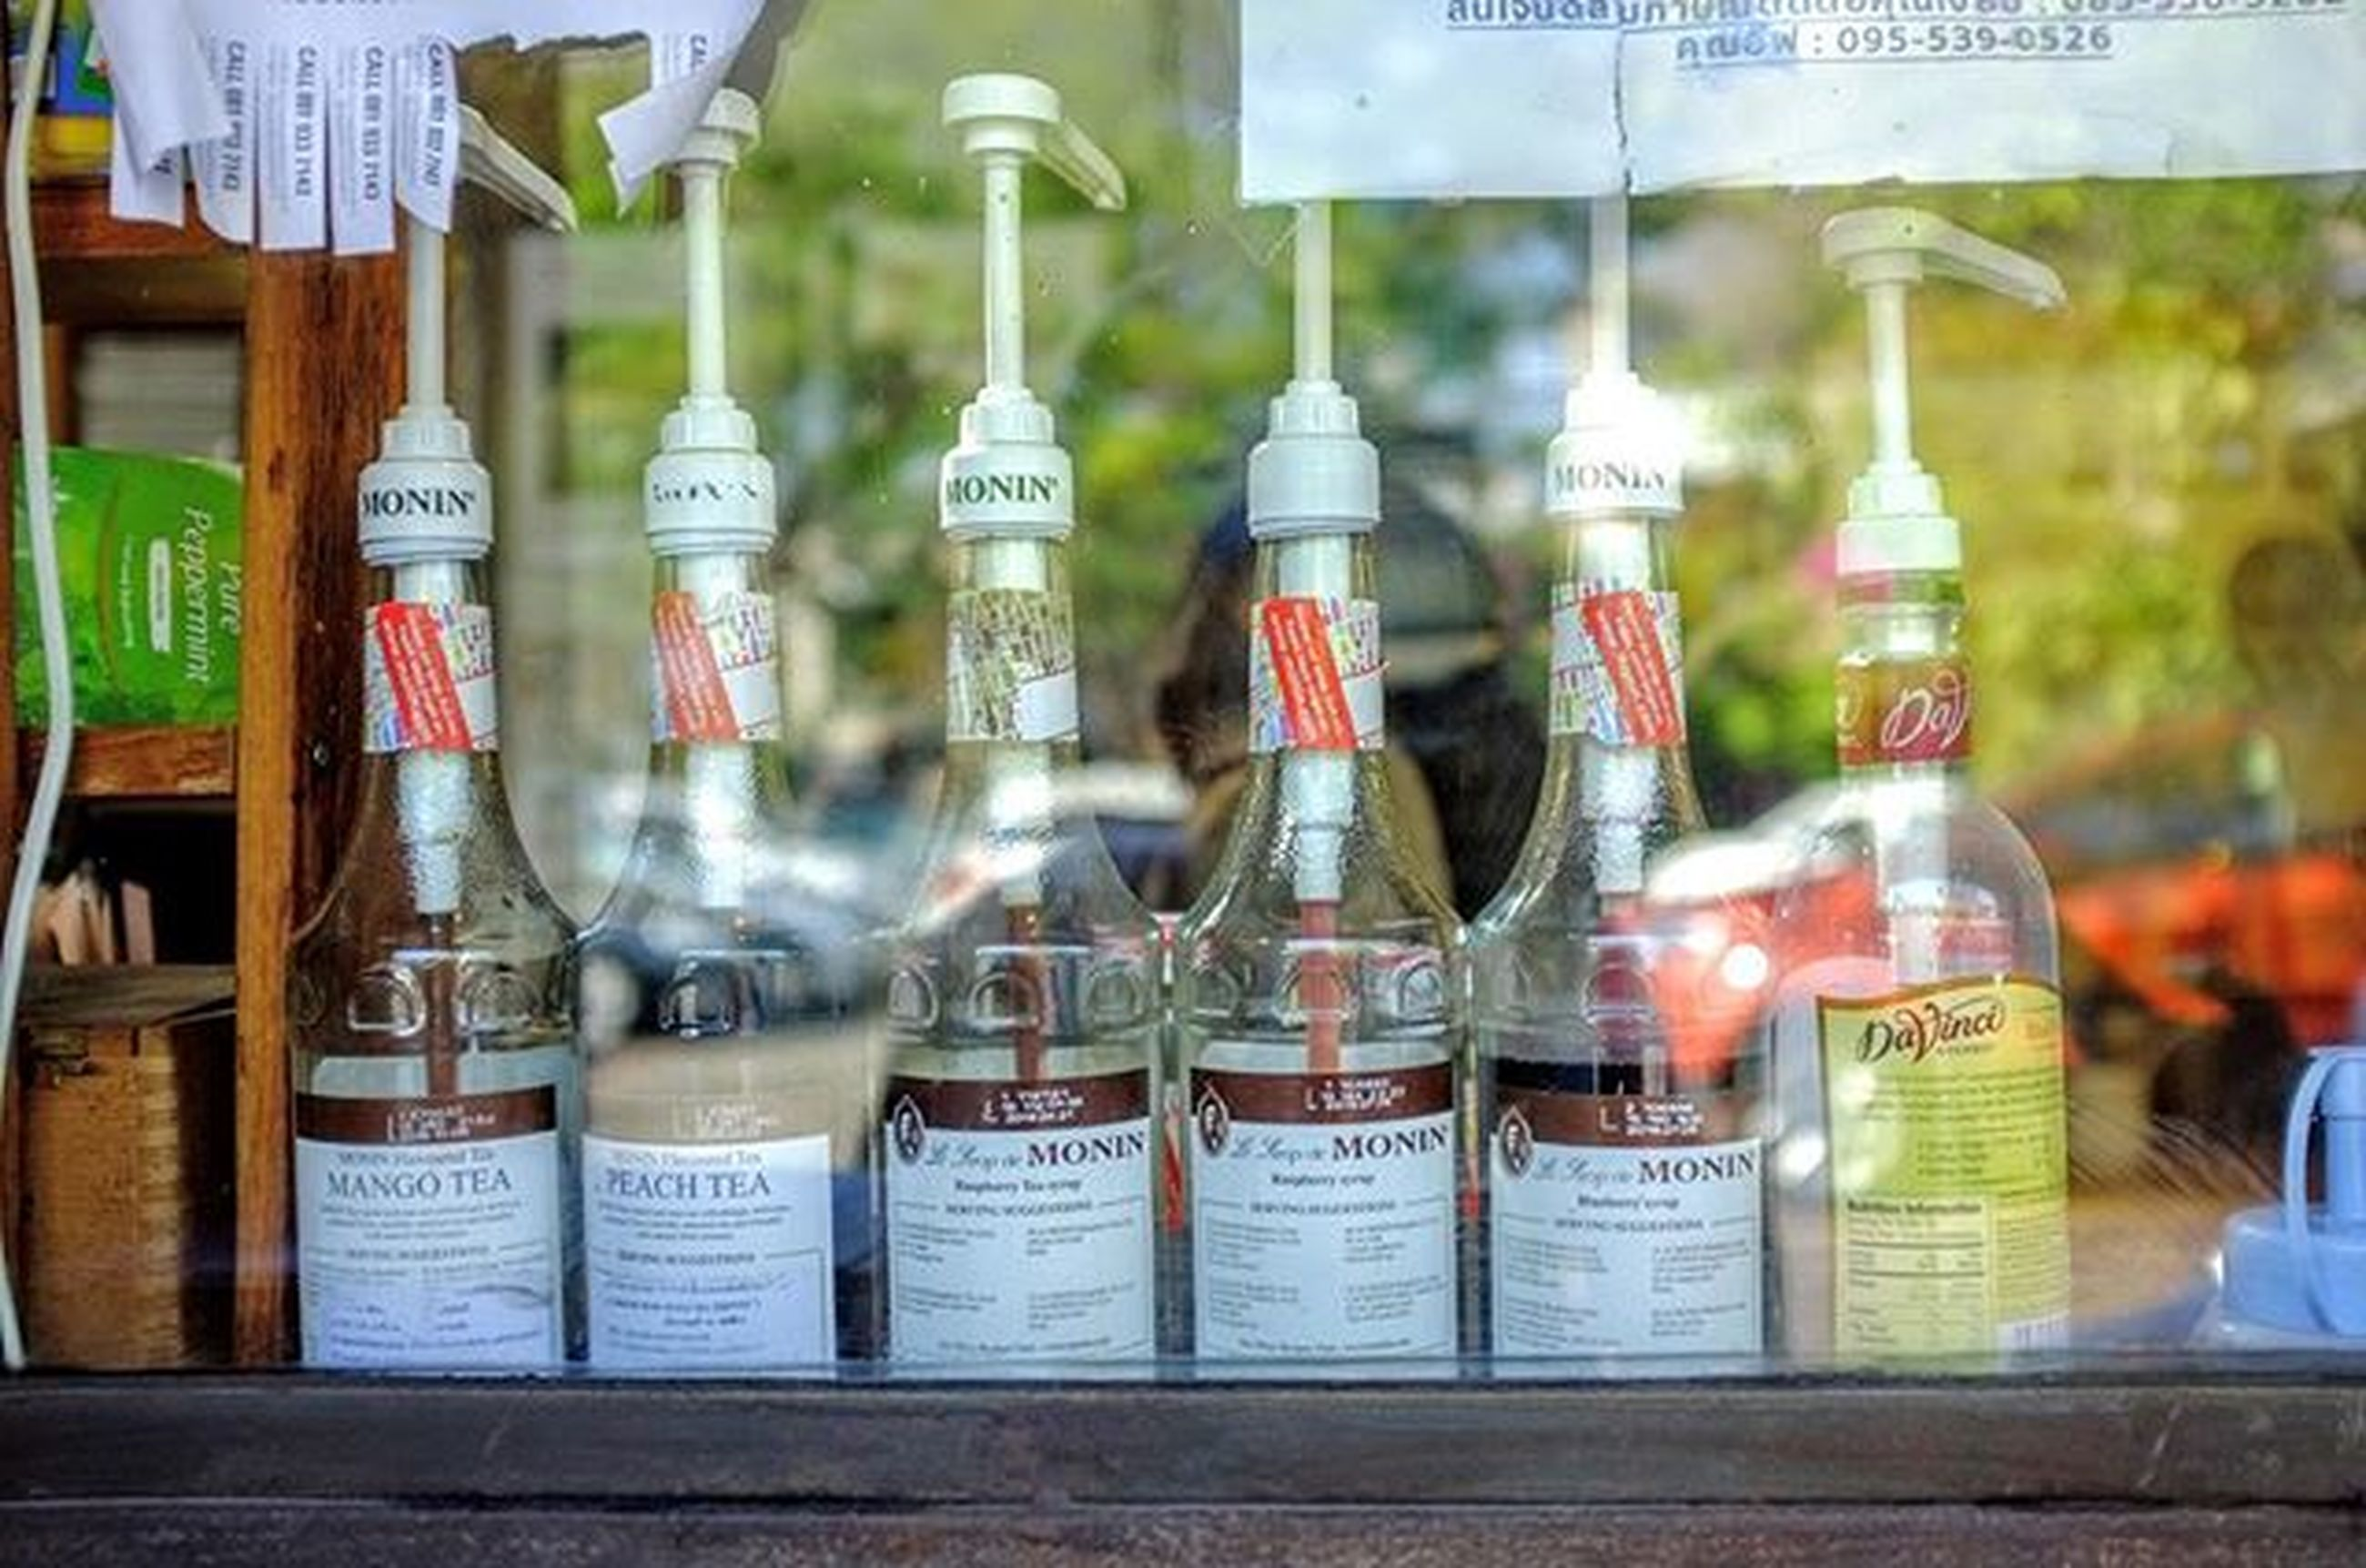 indoors, text, for sale, glass - material, western script, variation, retail, food and drink, choice, arrangement, store, still life, non-western script, large group of objects, close-up, shelf, communication, focus on foreground, transparent, bottle